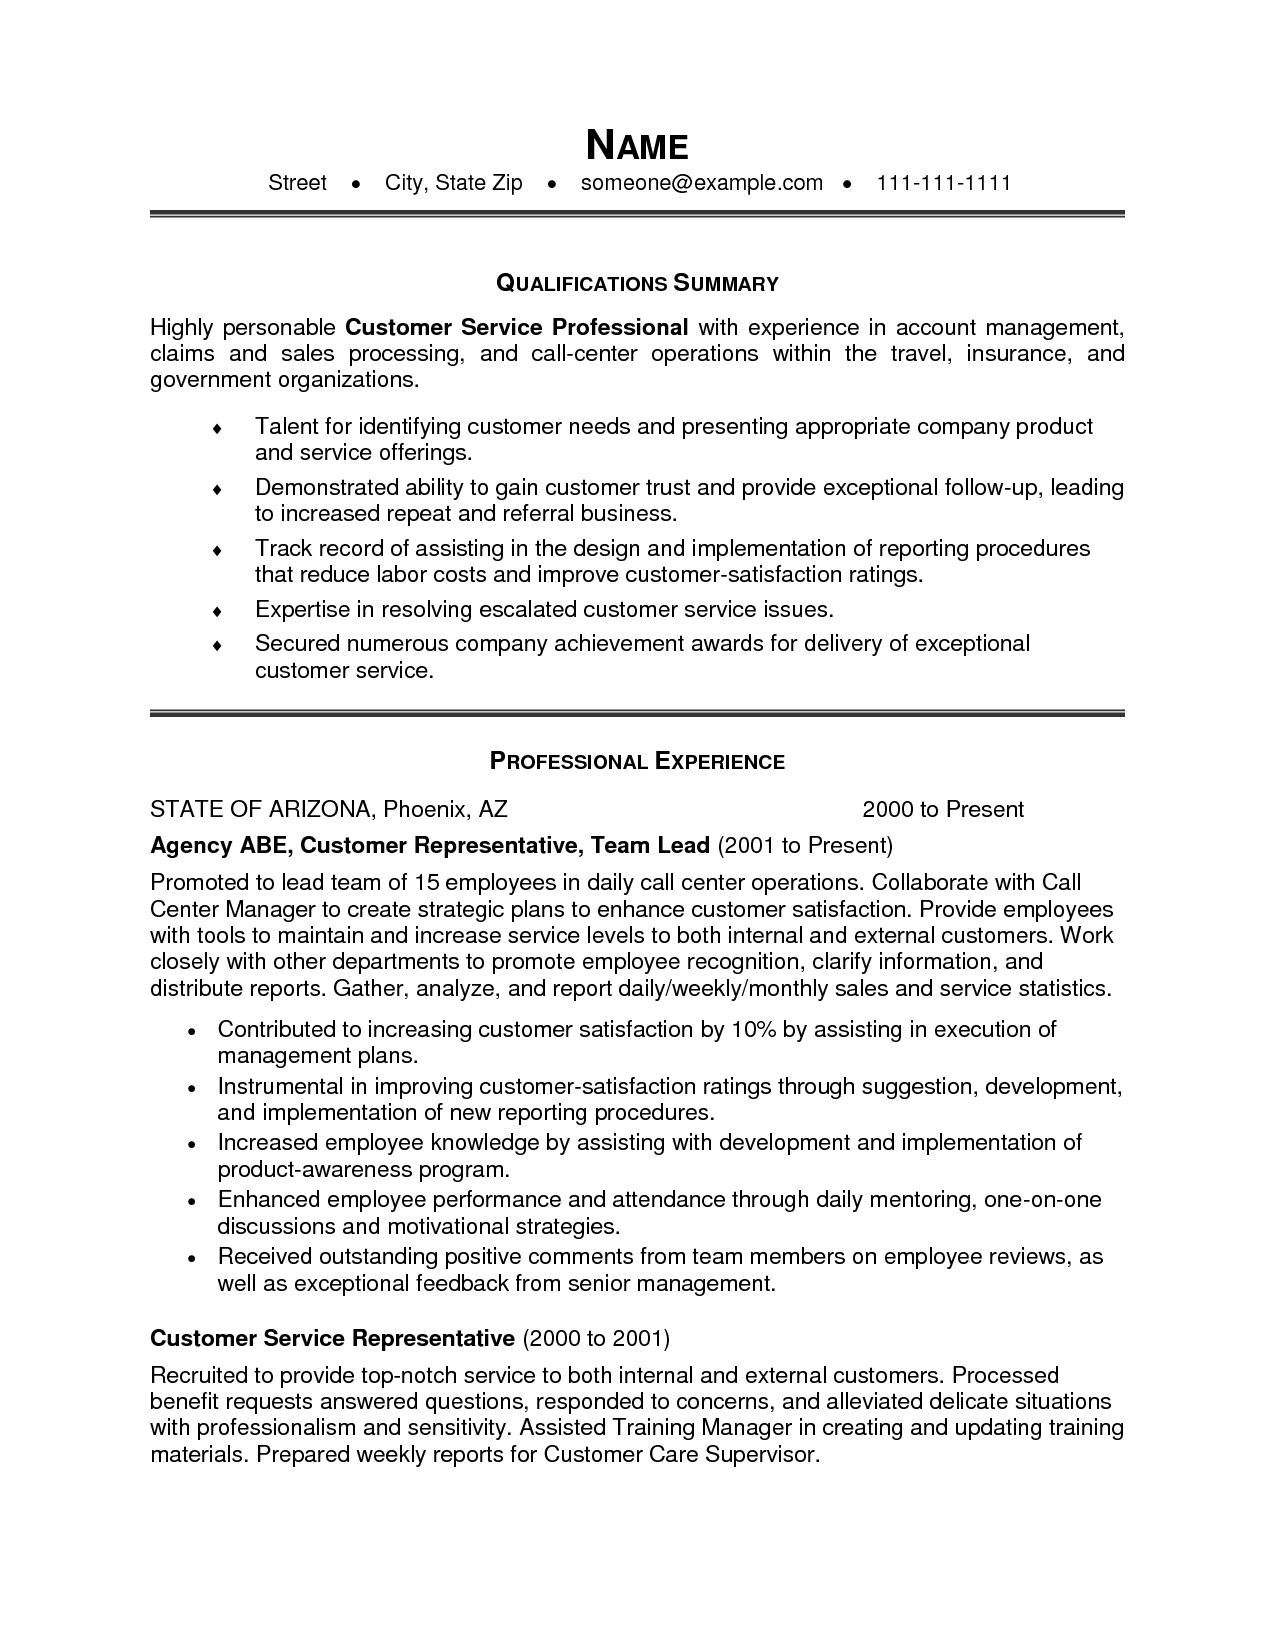 New Customer Service Resume Summary Examples Resume Template Online Customer Service Resume Resume Summary Customer Service Resume Examples